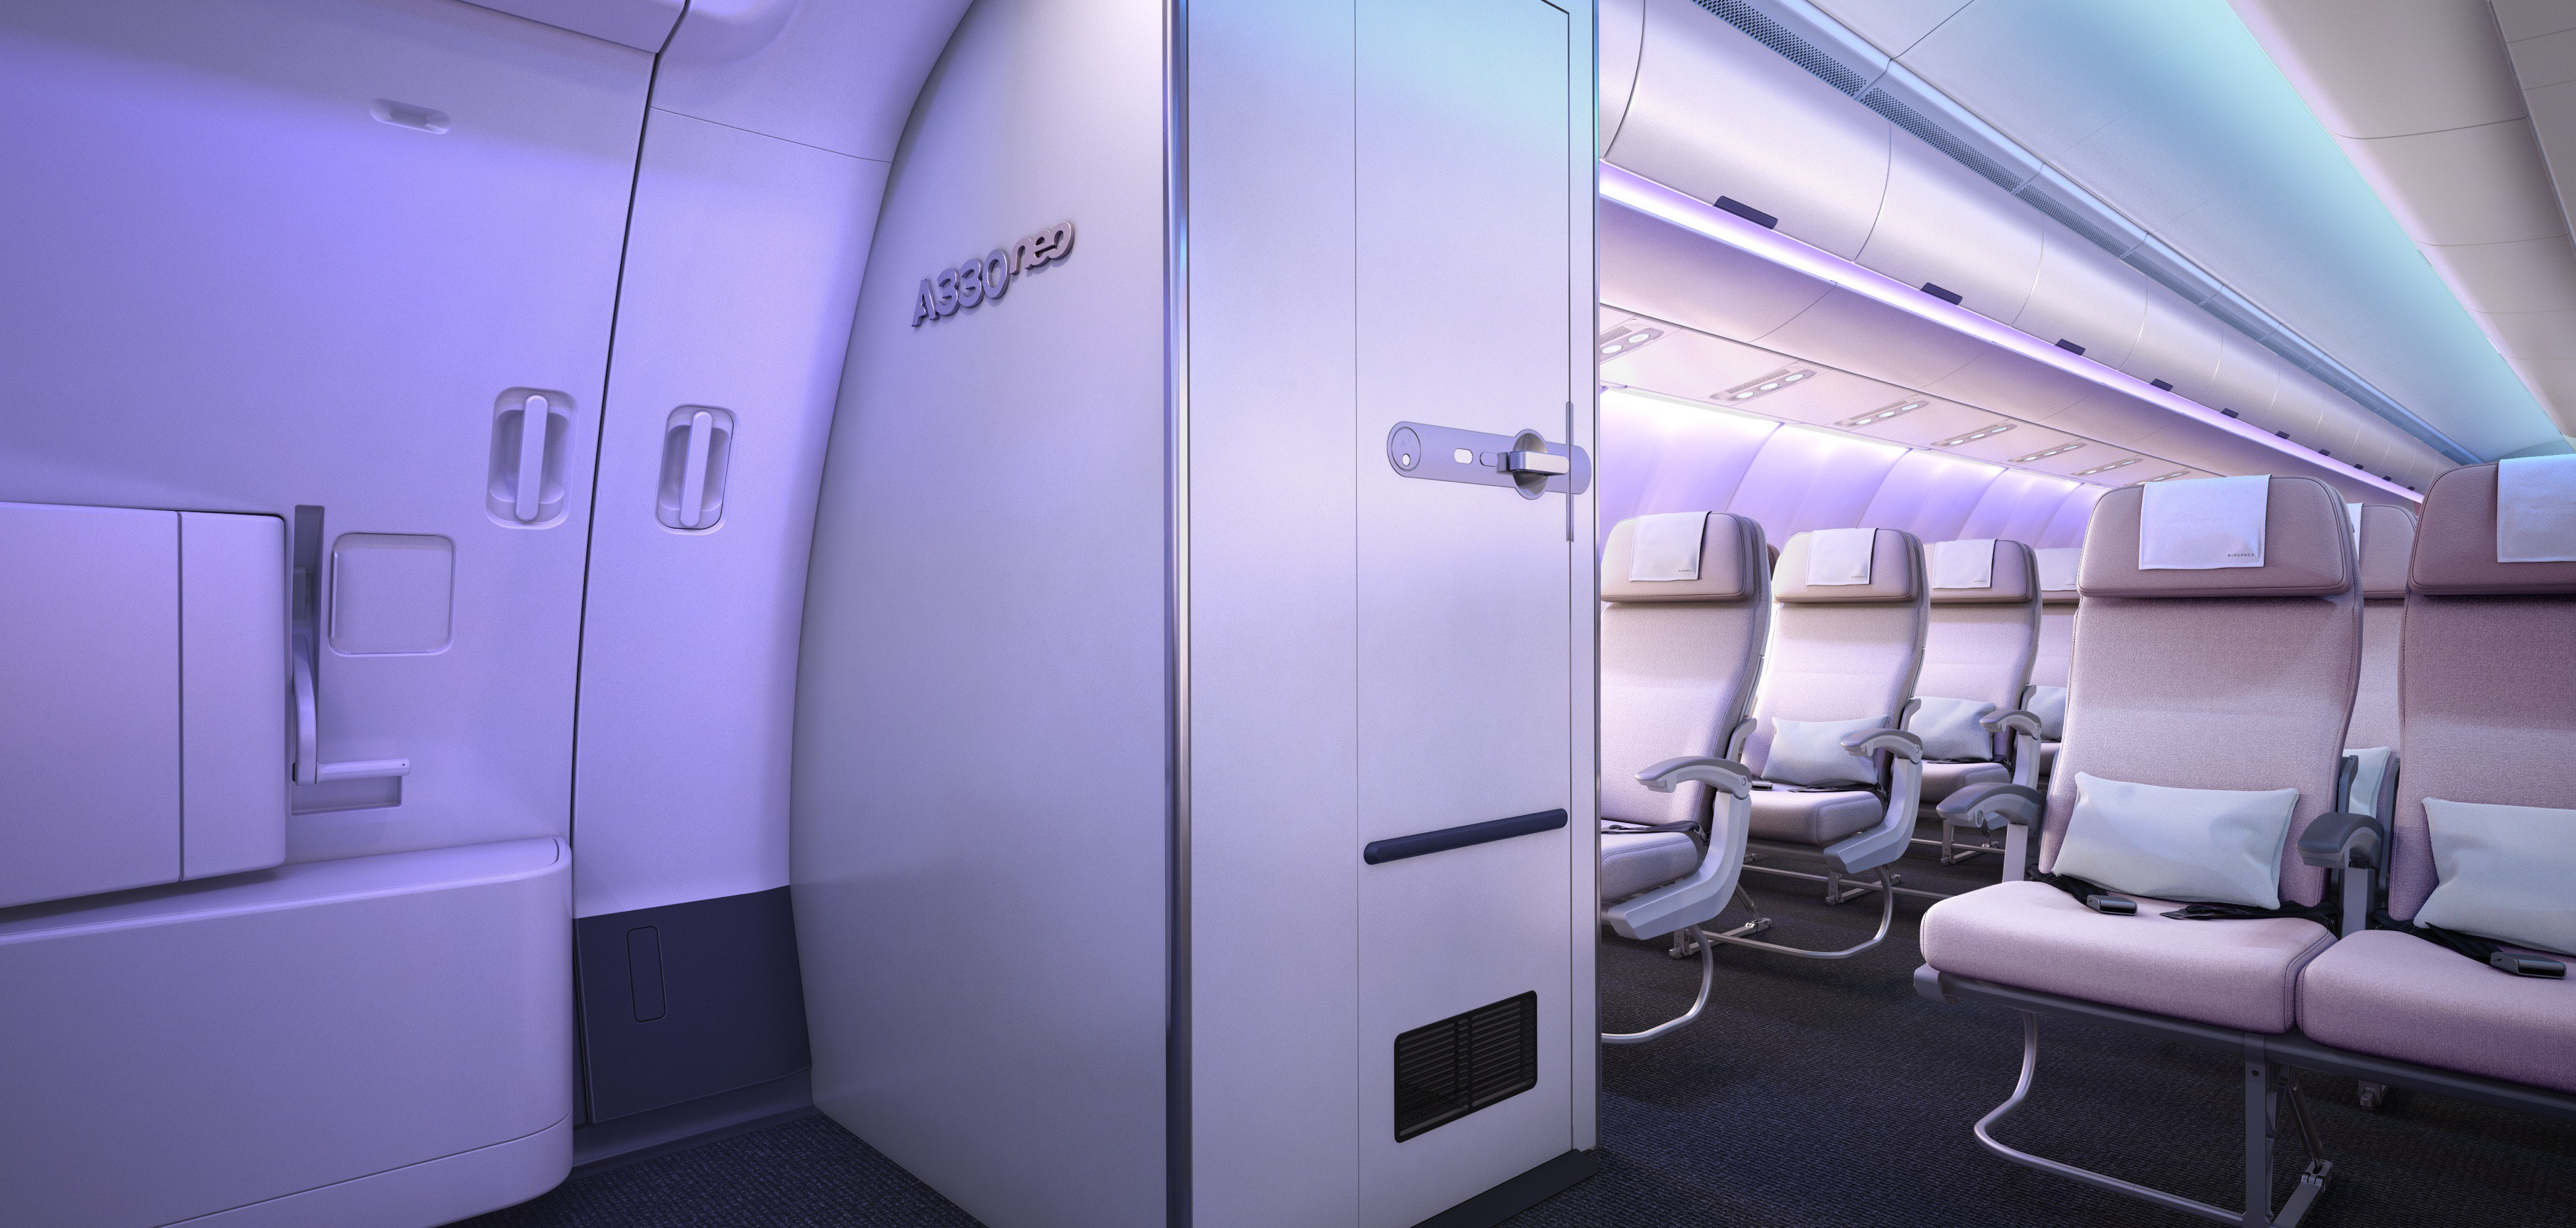 What-truly-smart-options-exist-around-lavatory-placement_-—Airbus